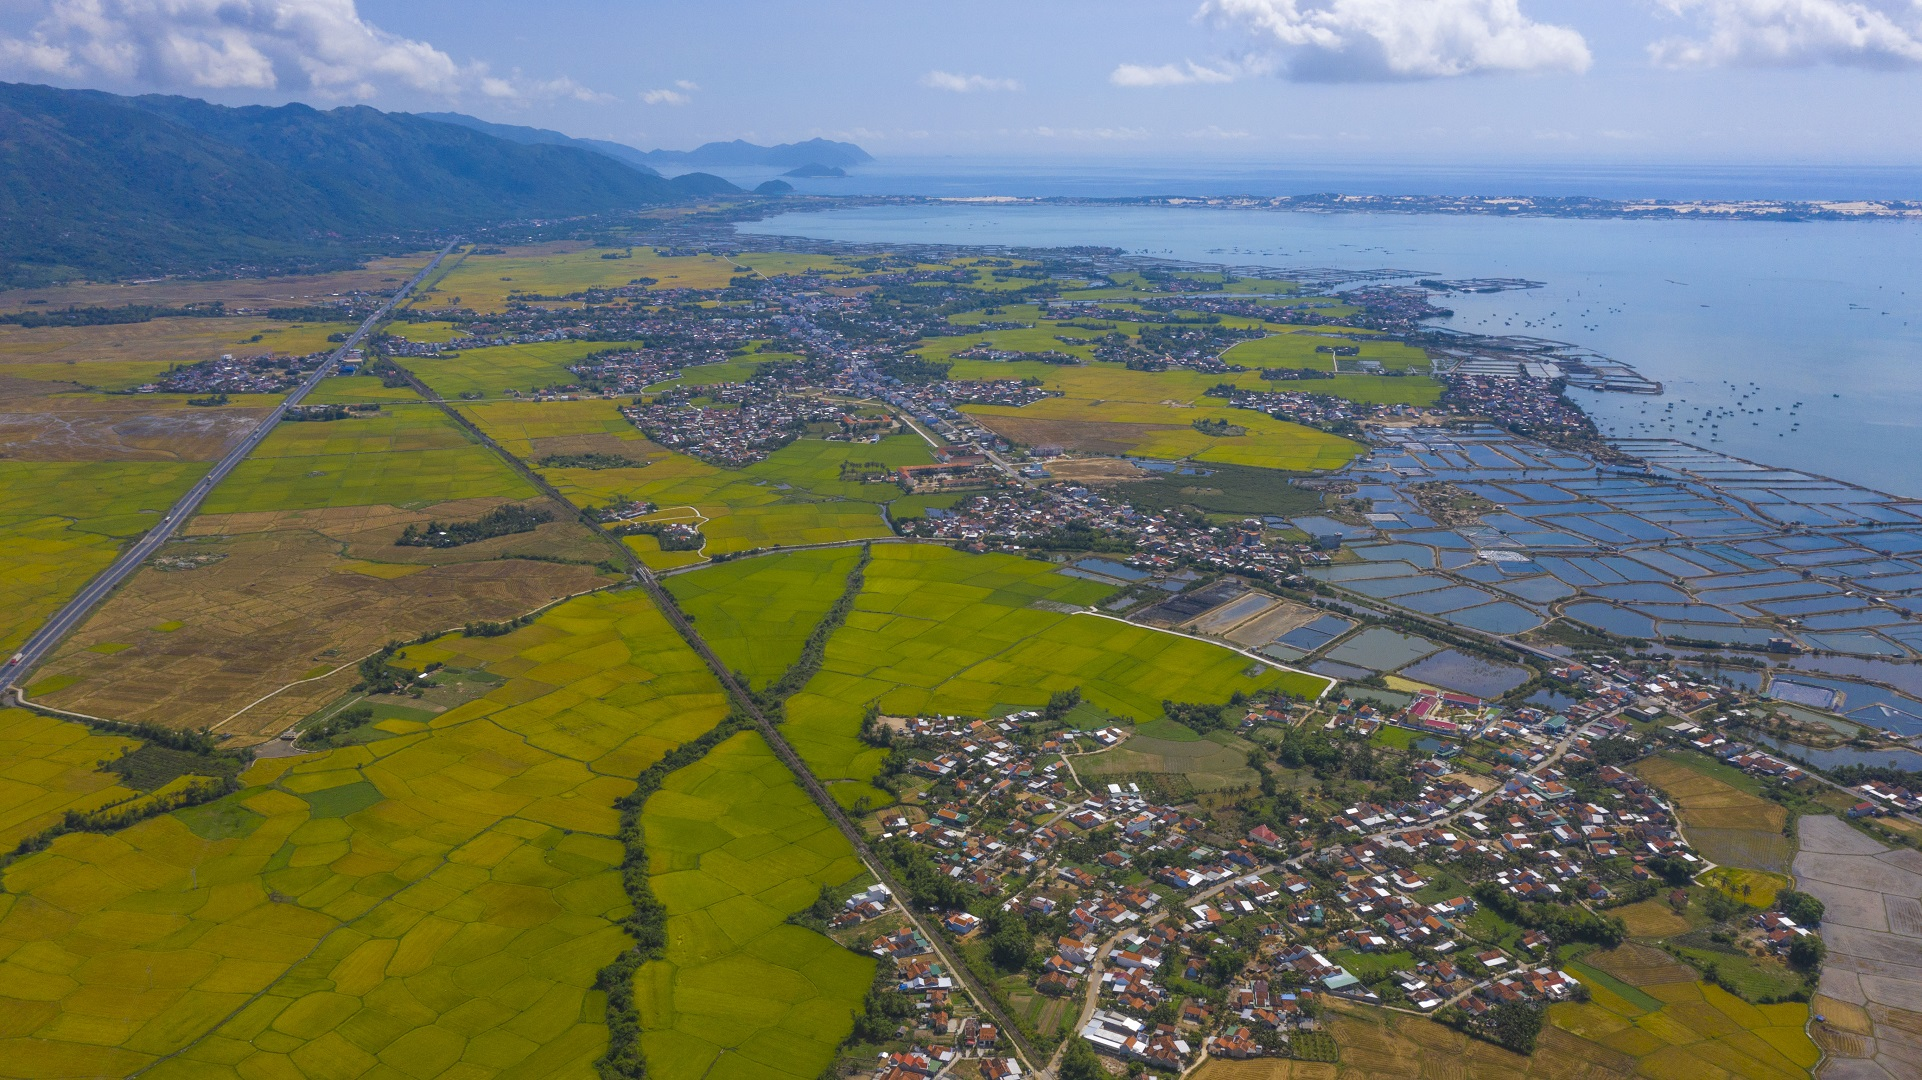 The central province of Khanh Hoa's Van Ninh District is seen from above. Photo: Quang Dinh / Tuoi Tre News